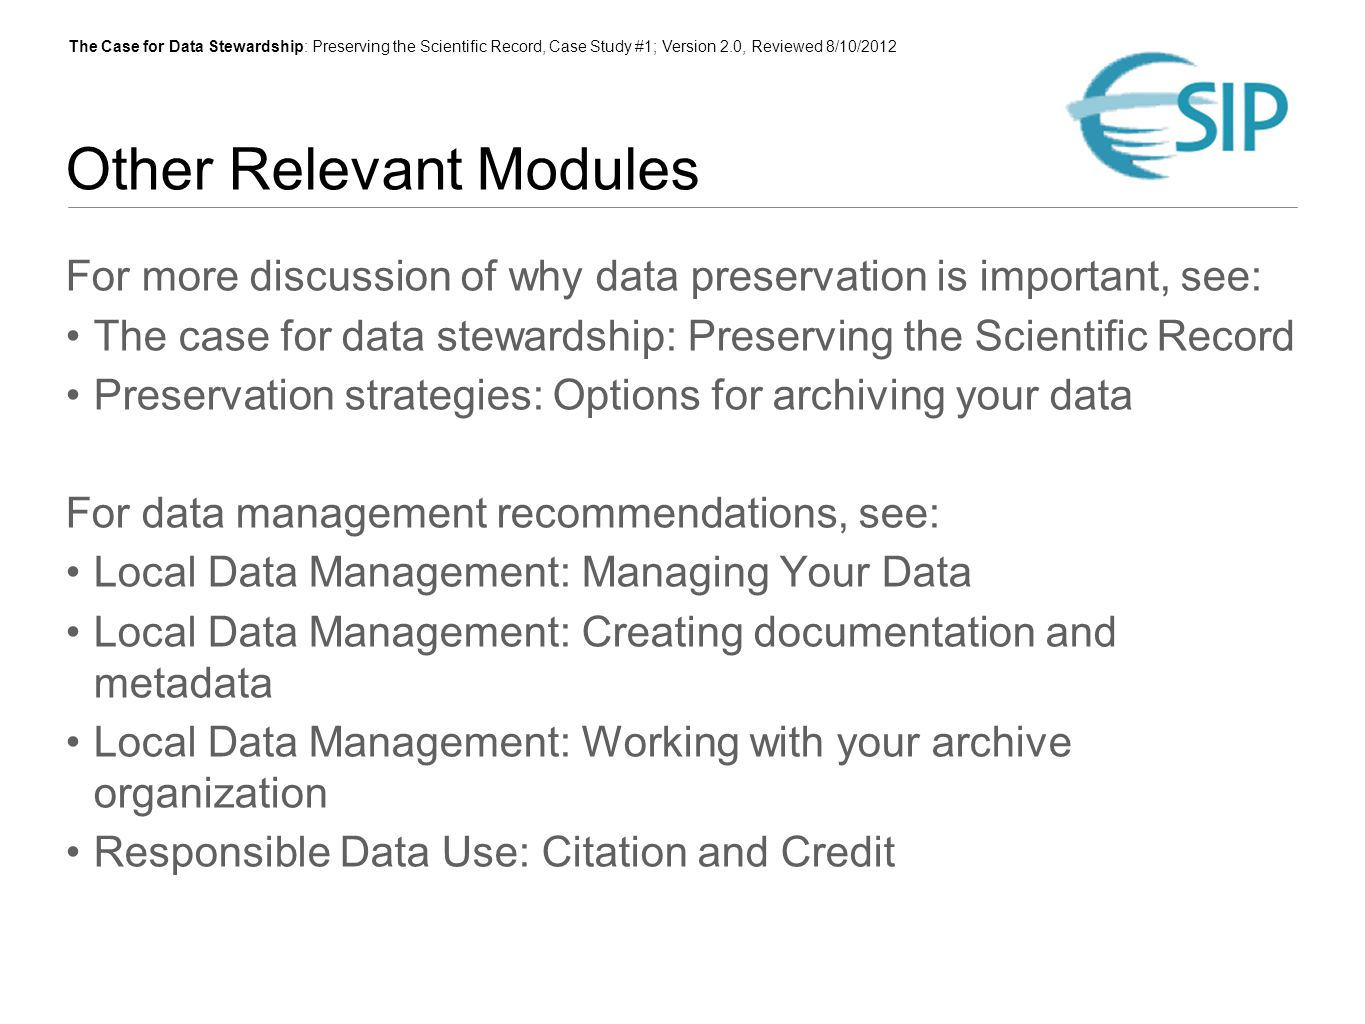 The Case for Data Stewardship: Preserving the Scientific Record, Case Study #1; Version 2.0, Reviewed 8/10/2012 Other Relevant Modules For more discussion of why data preservation is important, see: The case for data stewardship: Preserving the Scientific Record Preservation strategies: Options for archiving your data For data management recommendations, see: Local Data Management: Managing Your Data Local Data Management: Creating documentation and metadata Local Data Management: Working with your archive organization Responsible Data Use: Citation and Credit